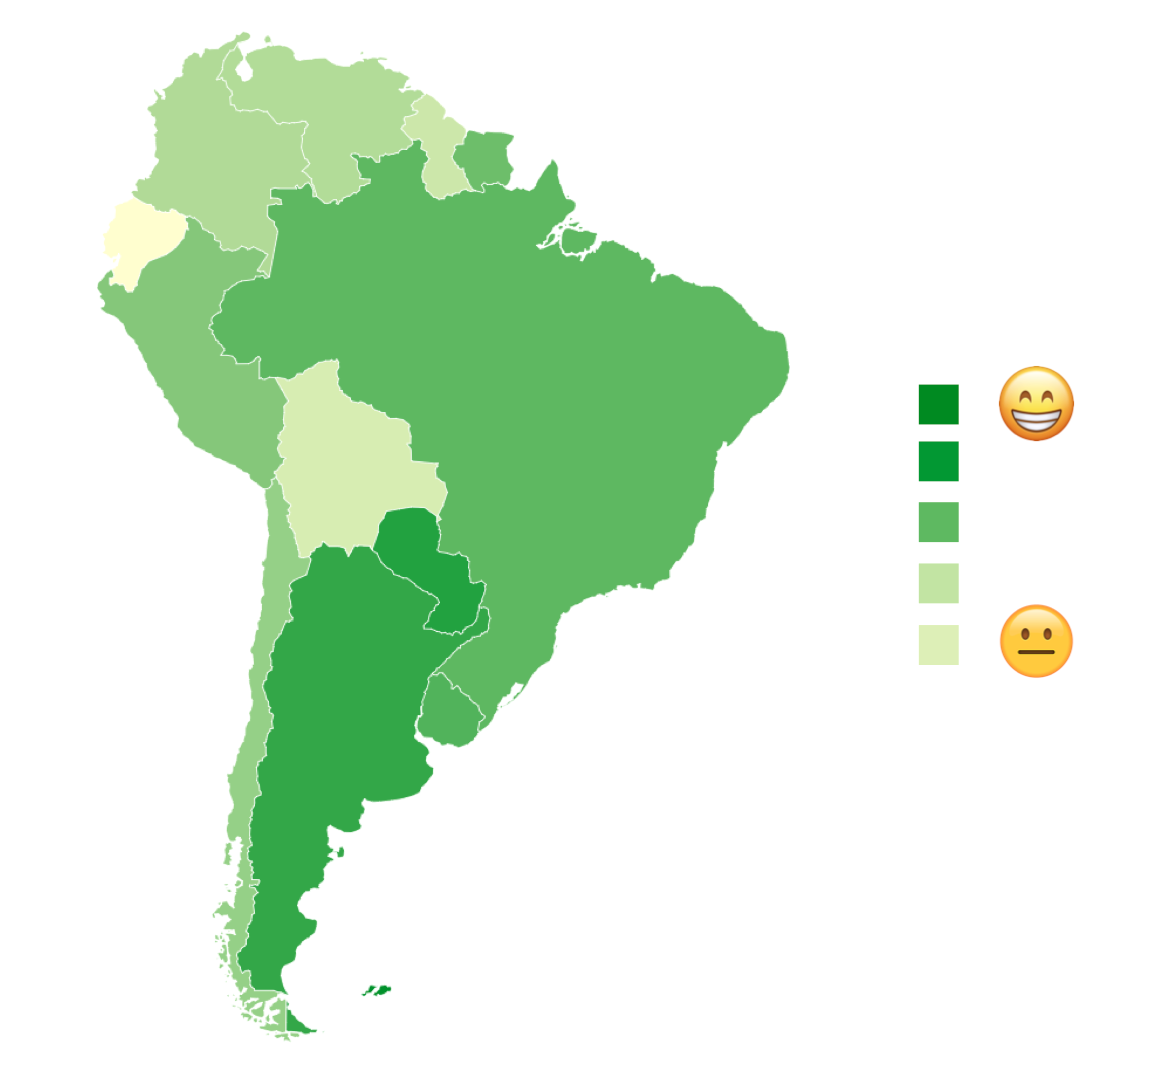 Heat map reveals happiest places in South America